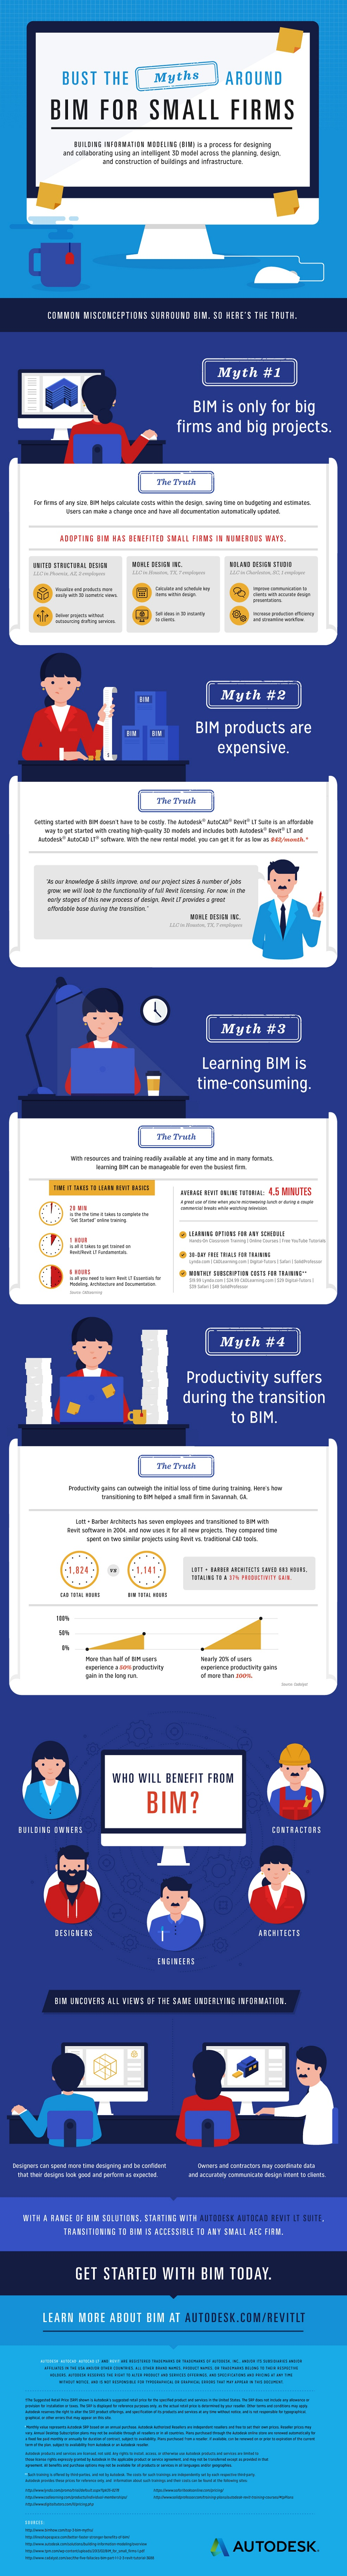 Bust The Myths Around BIM For Small Firms